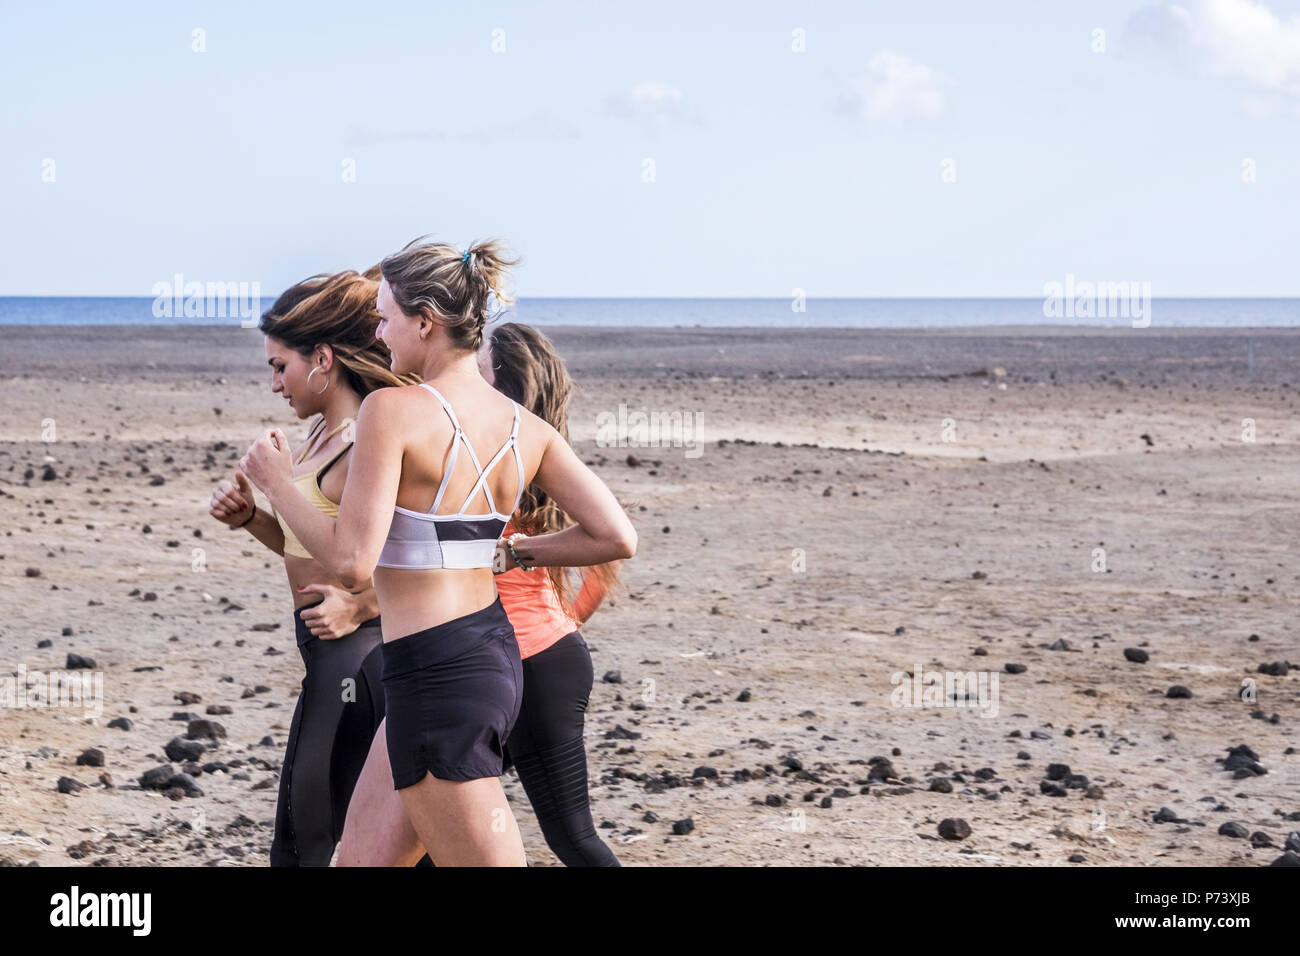 three caucasian beautiful young ladies running near the ocean on the beach for healthy positive lifestyle and carefree. happy to work on body results  - Stock Image